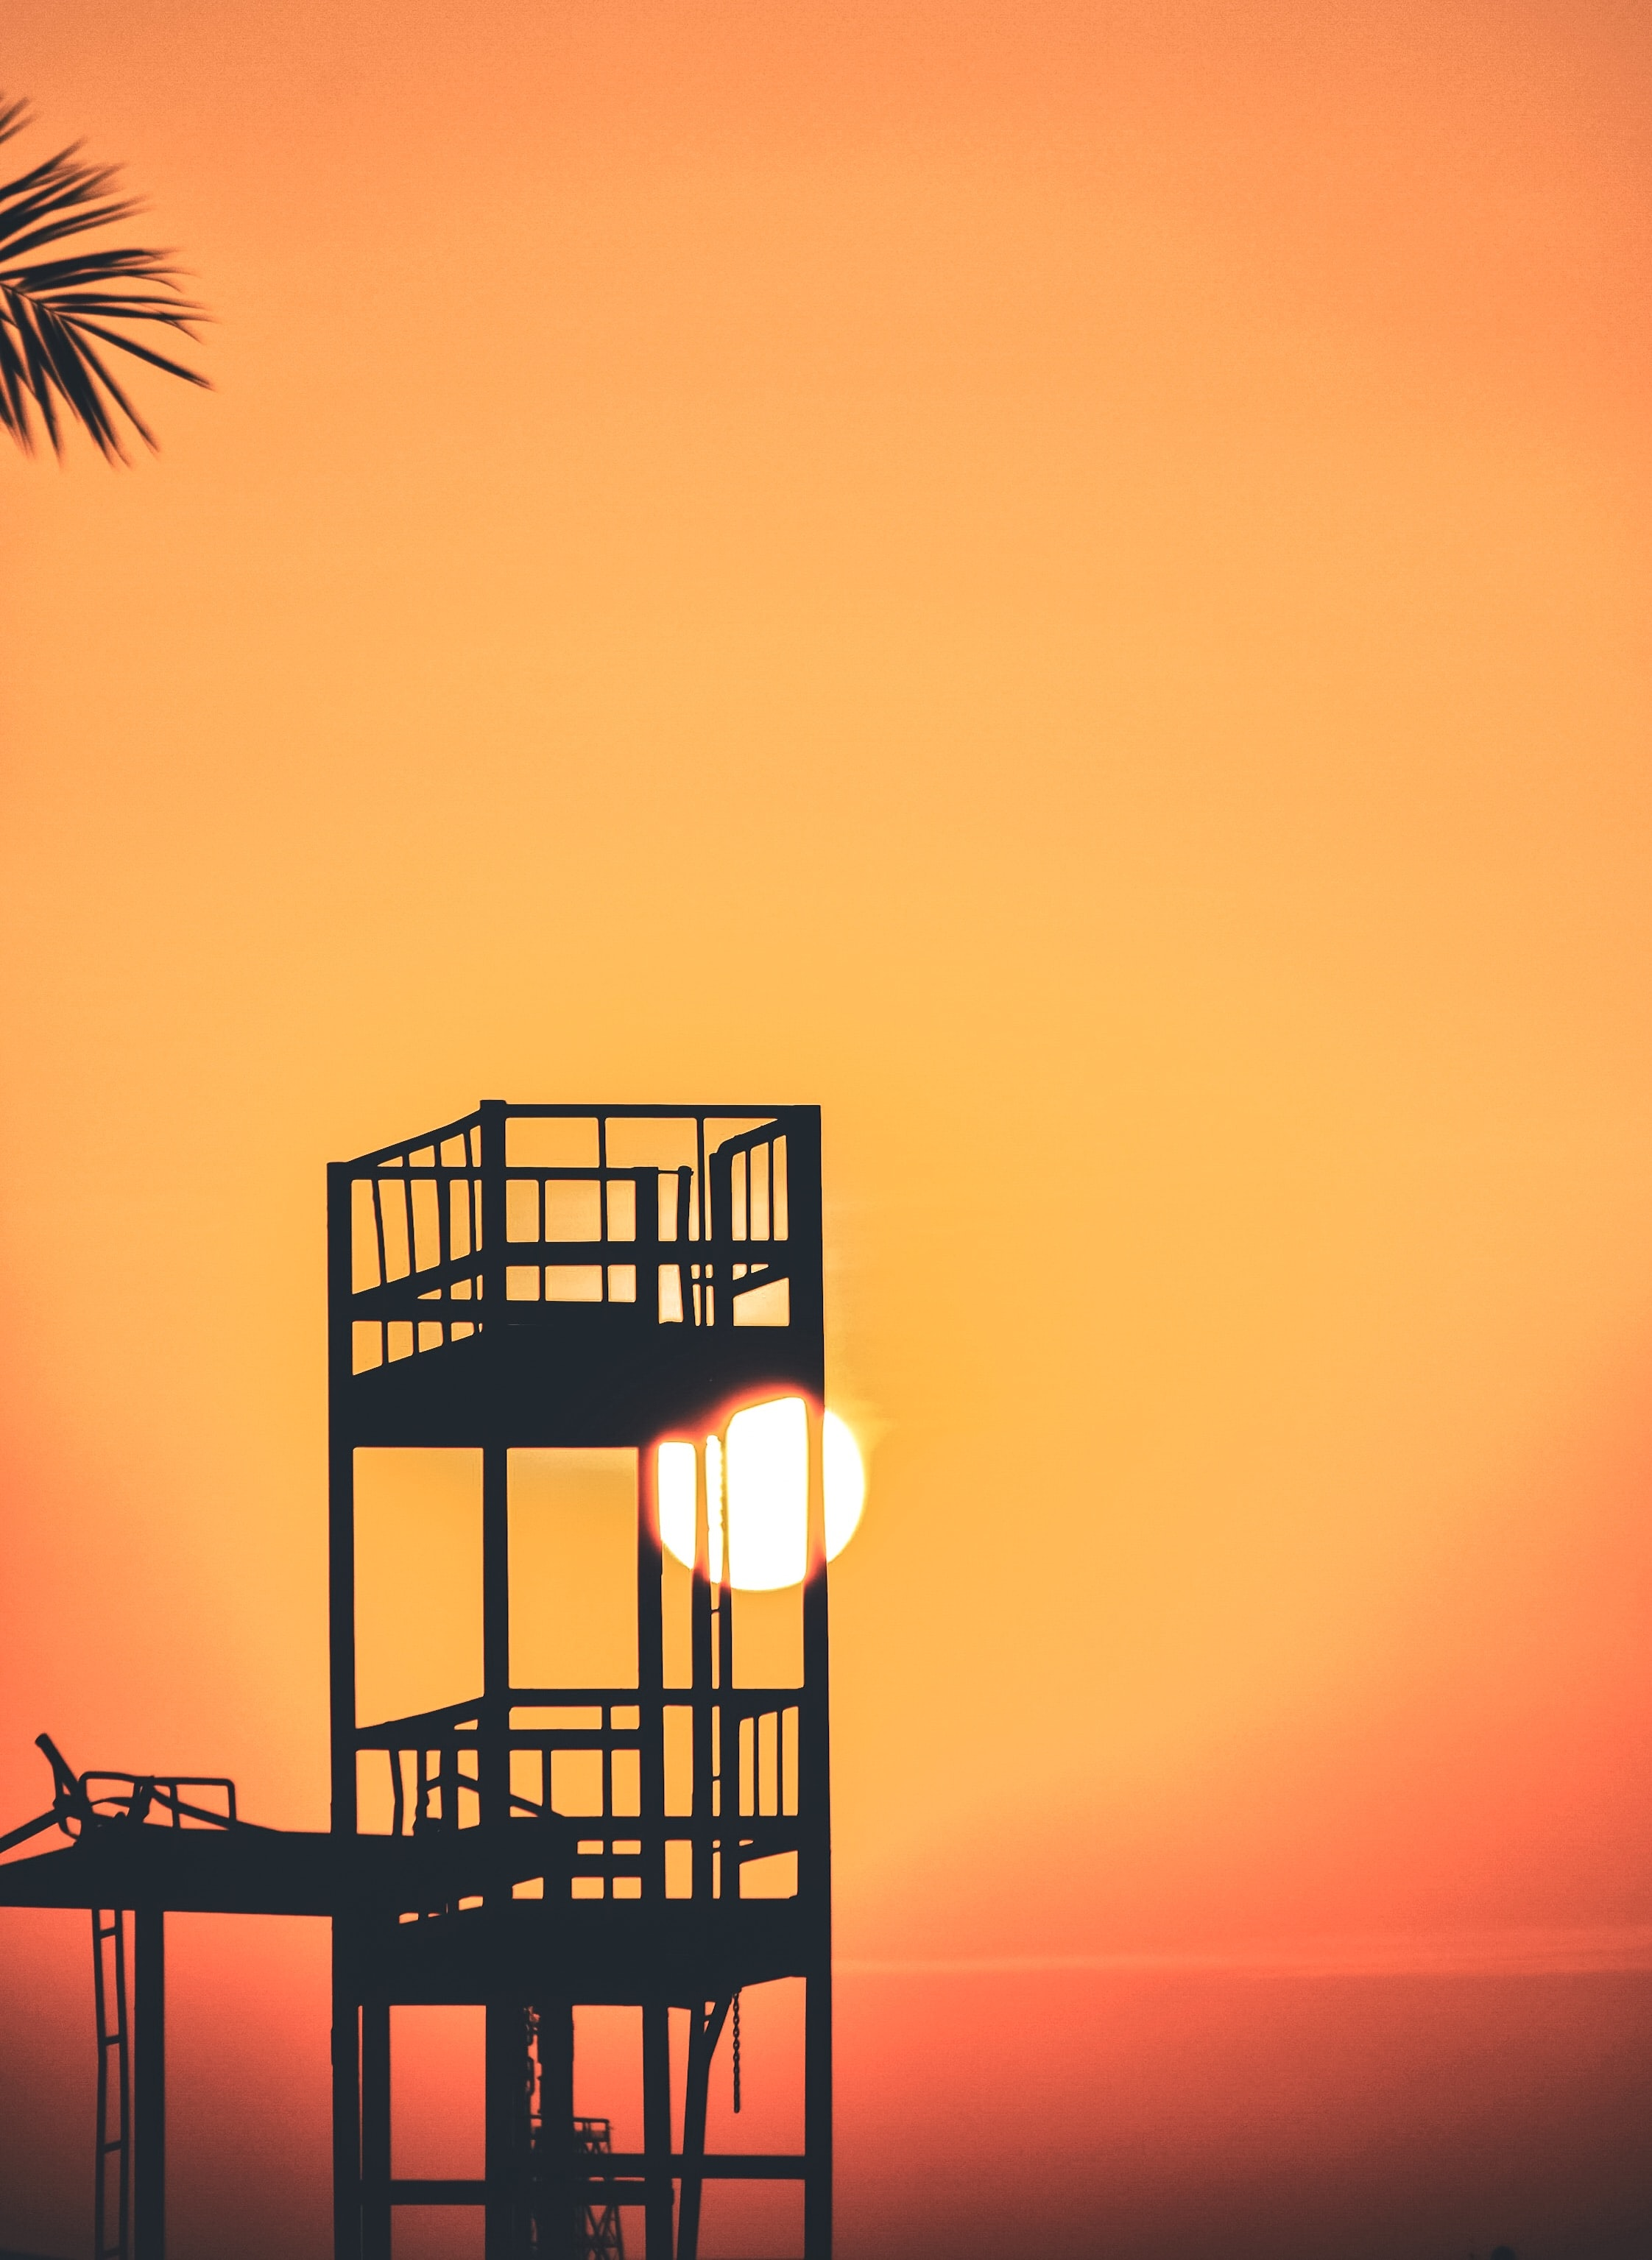 silhouette of watch tower during golden hour